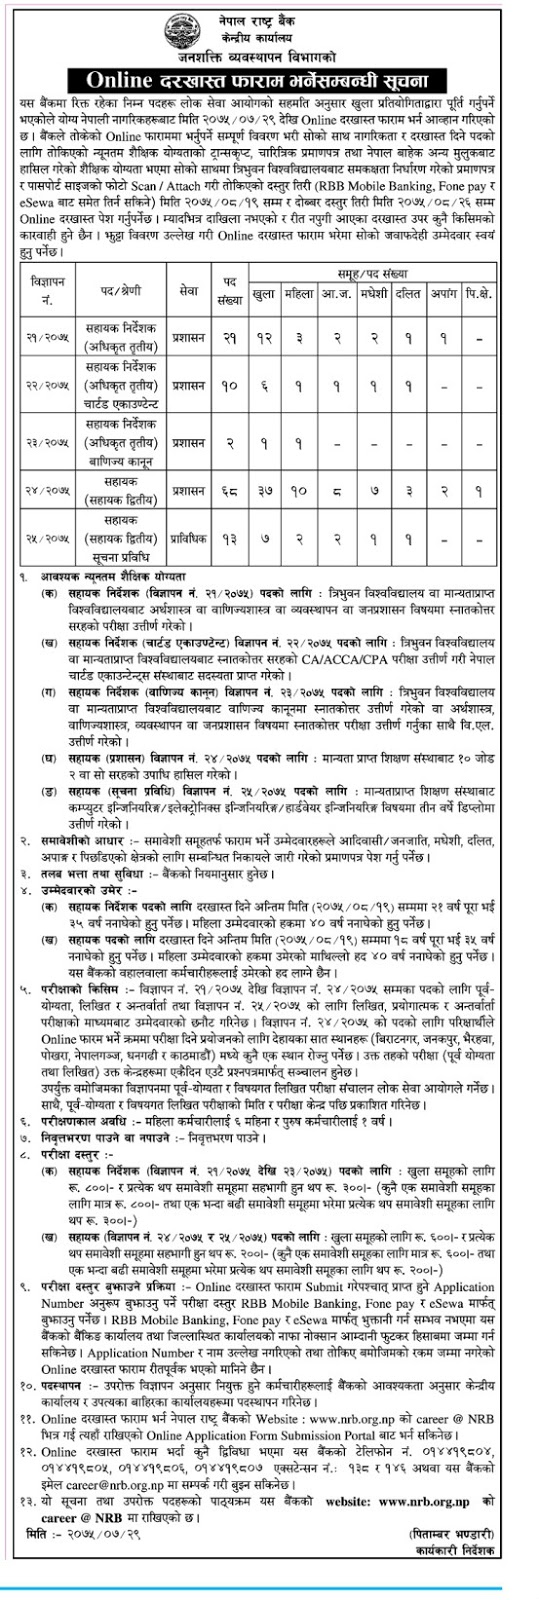 Nepal Rastra Bank Announced Online Applications for Various Posts